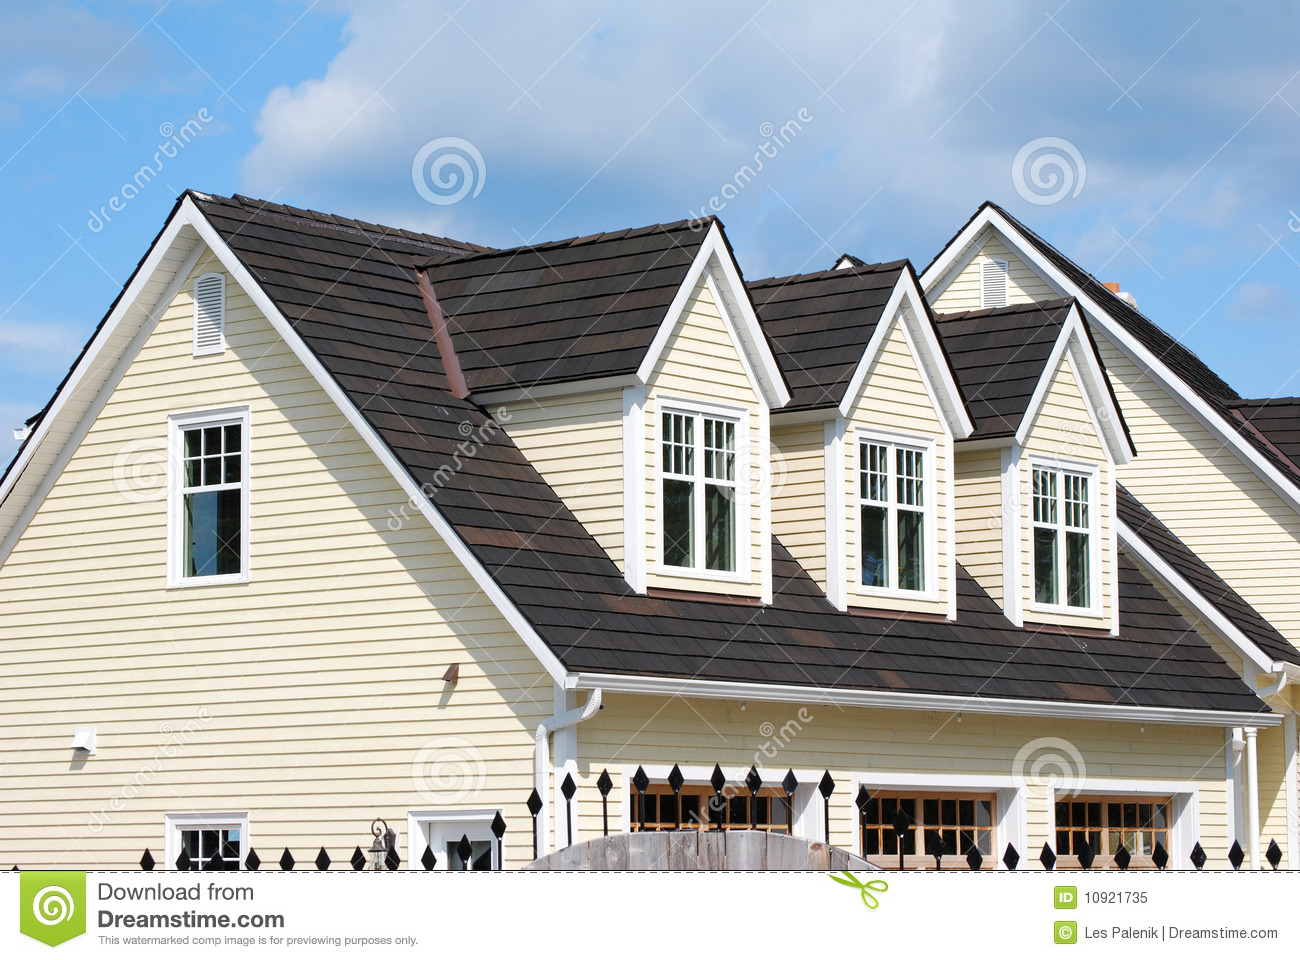 House With 3 Dormers Stock Image Image Of House Home